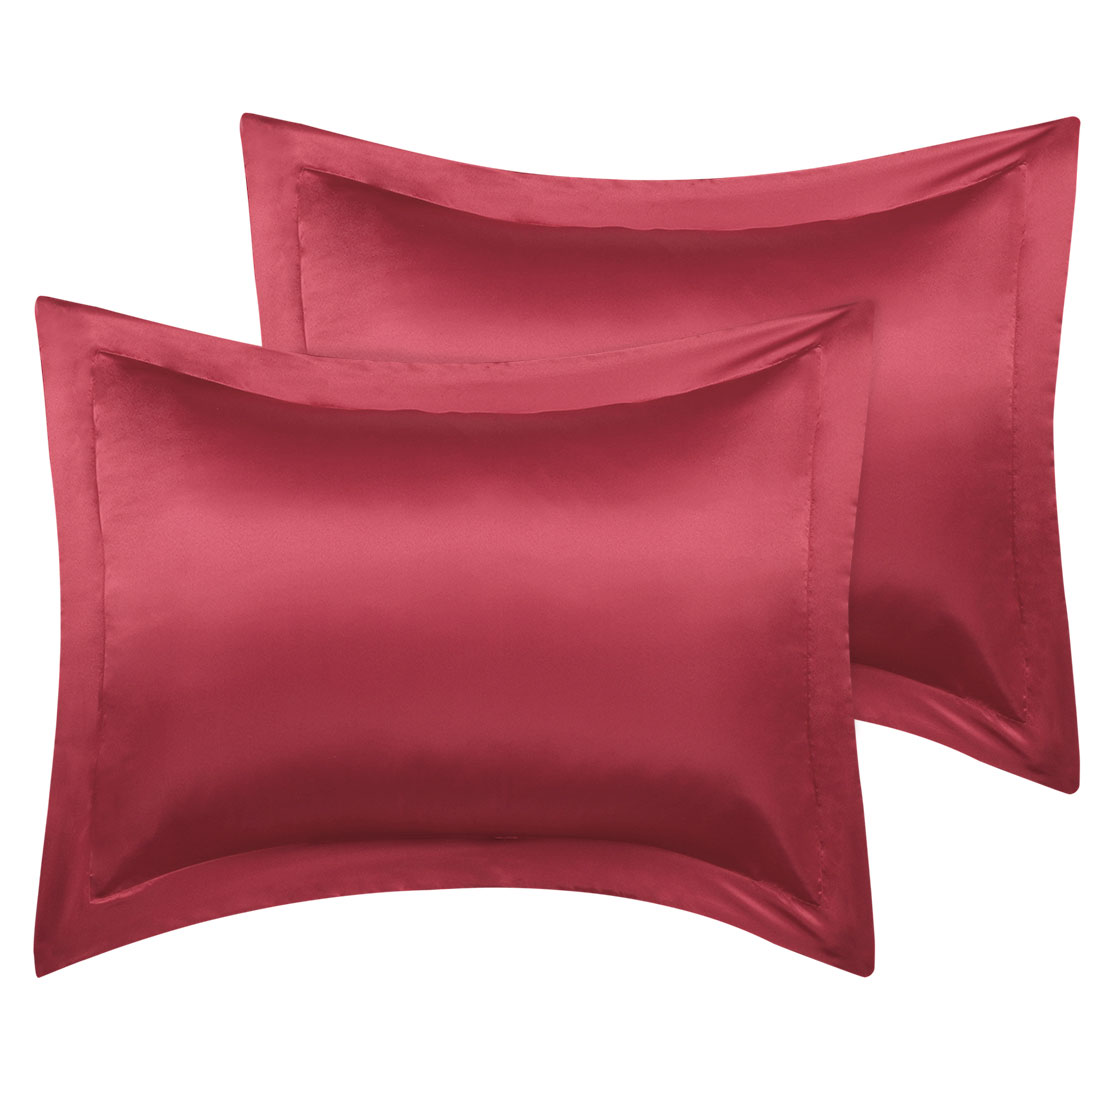 2 Pcs Wine Red Pillow Shams Satin Pillow Cases Queen Oxford Pillowcases